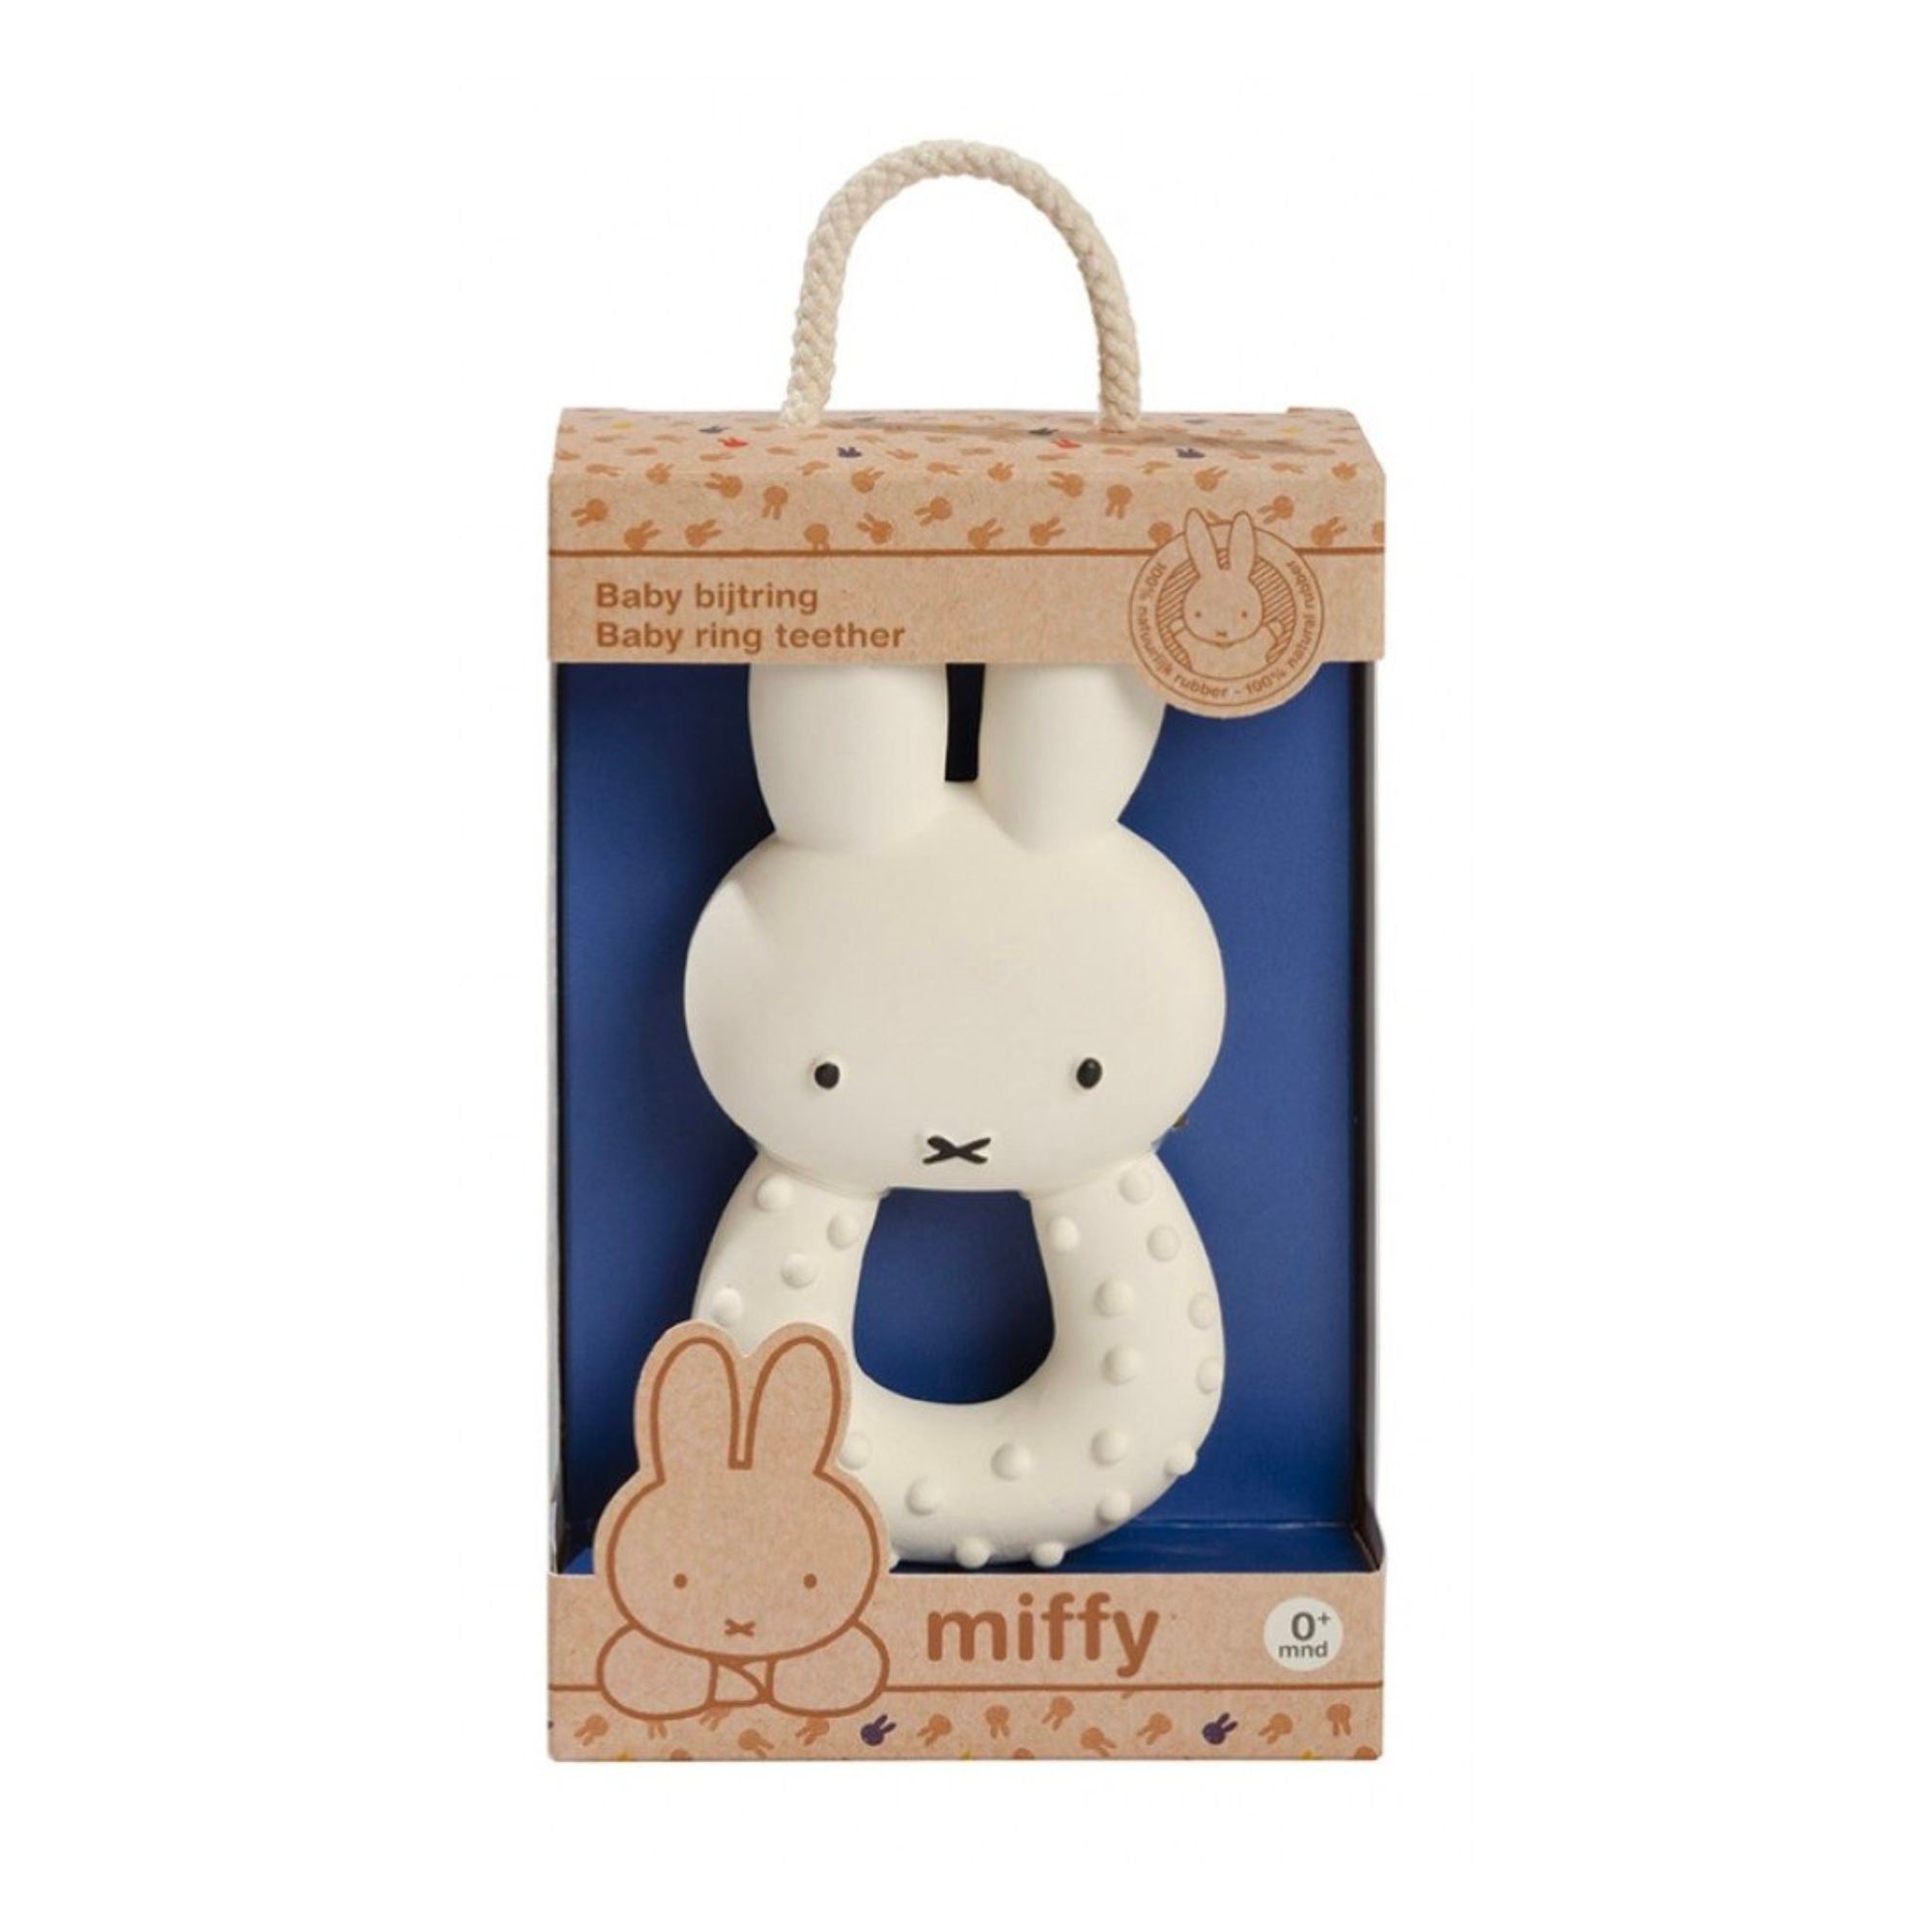 Miffy Teether Toy